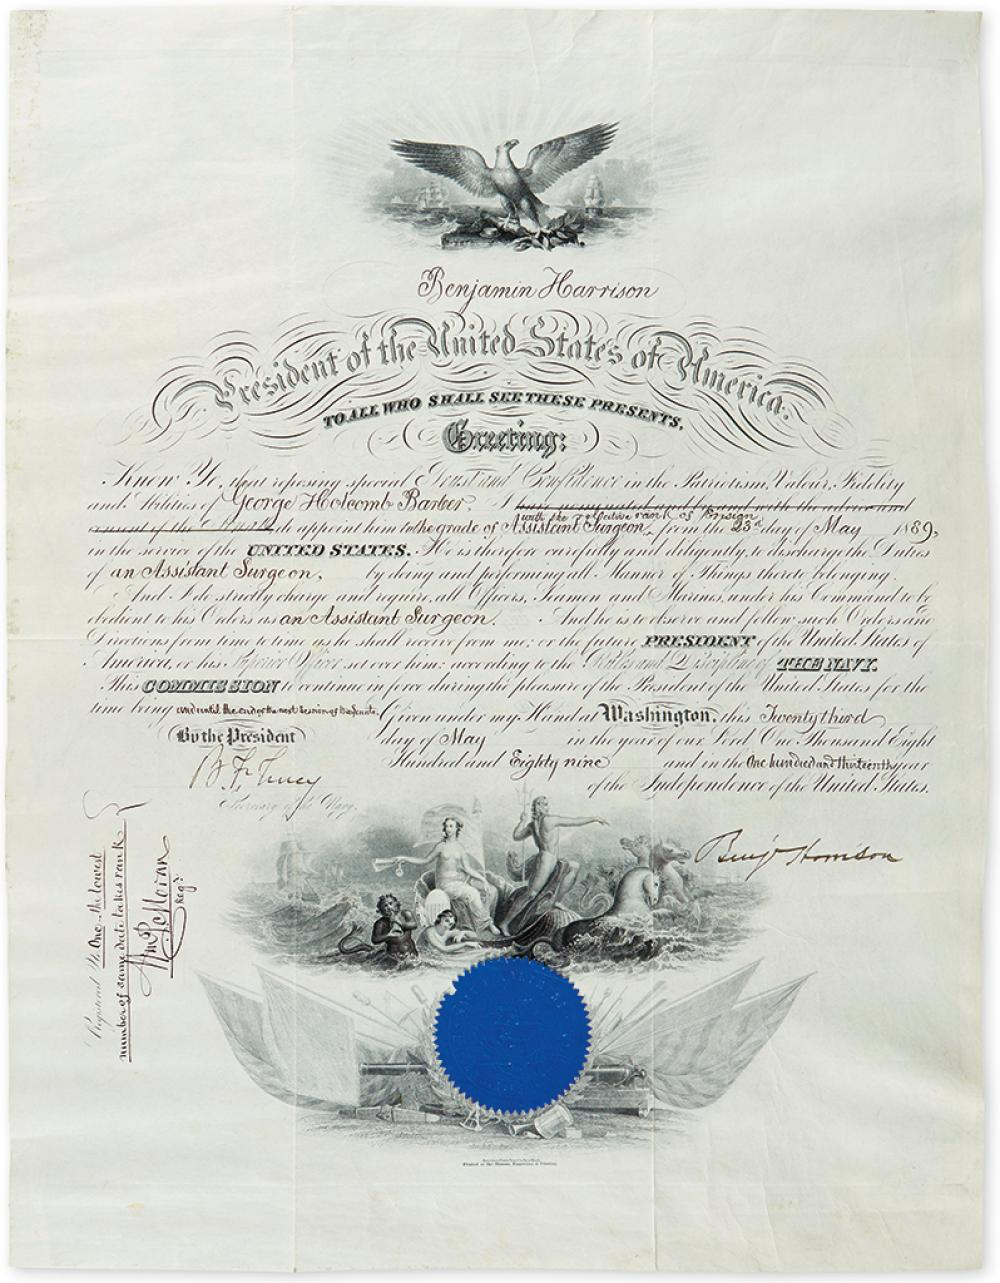 (PRESIDENTS.) Group of 3 partly-printed vellum Documents Signed, each by a President, as President: Benjamin Harrison * Grover Clevelan